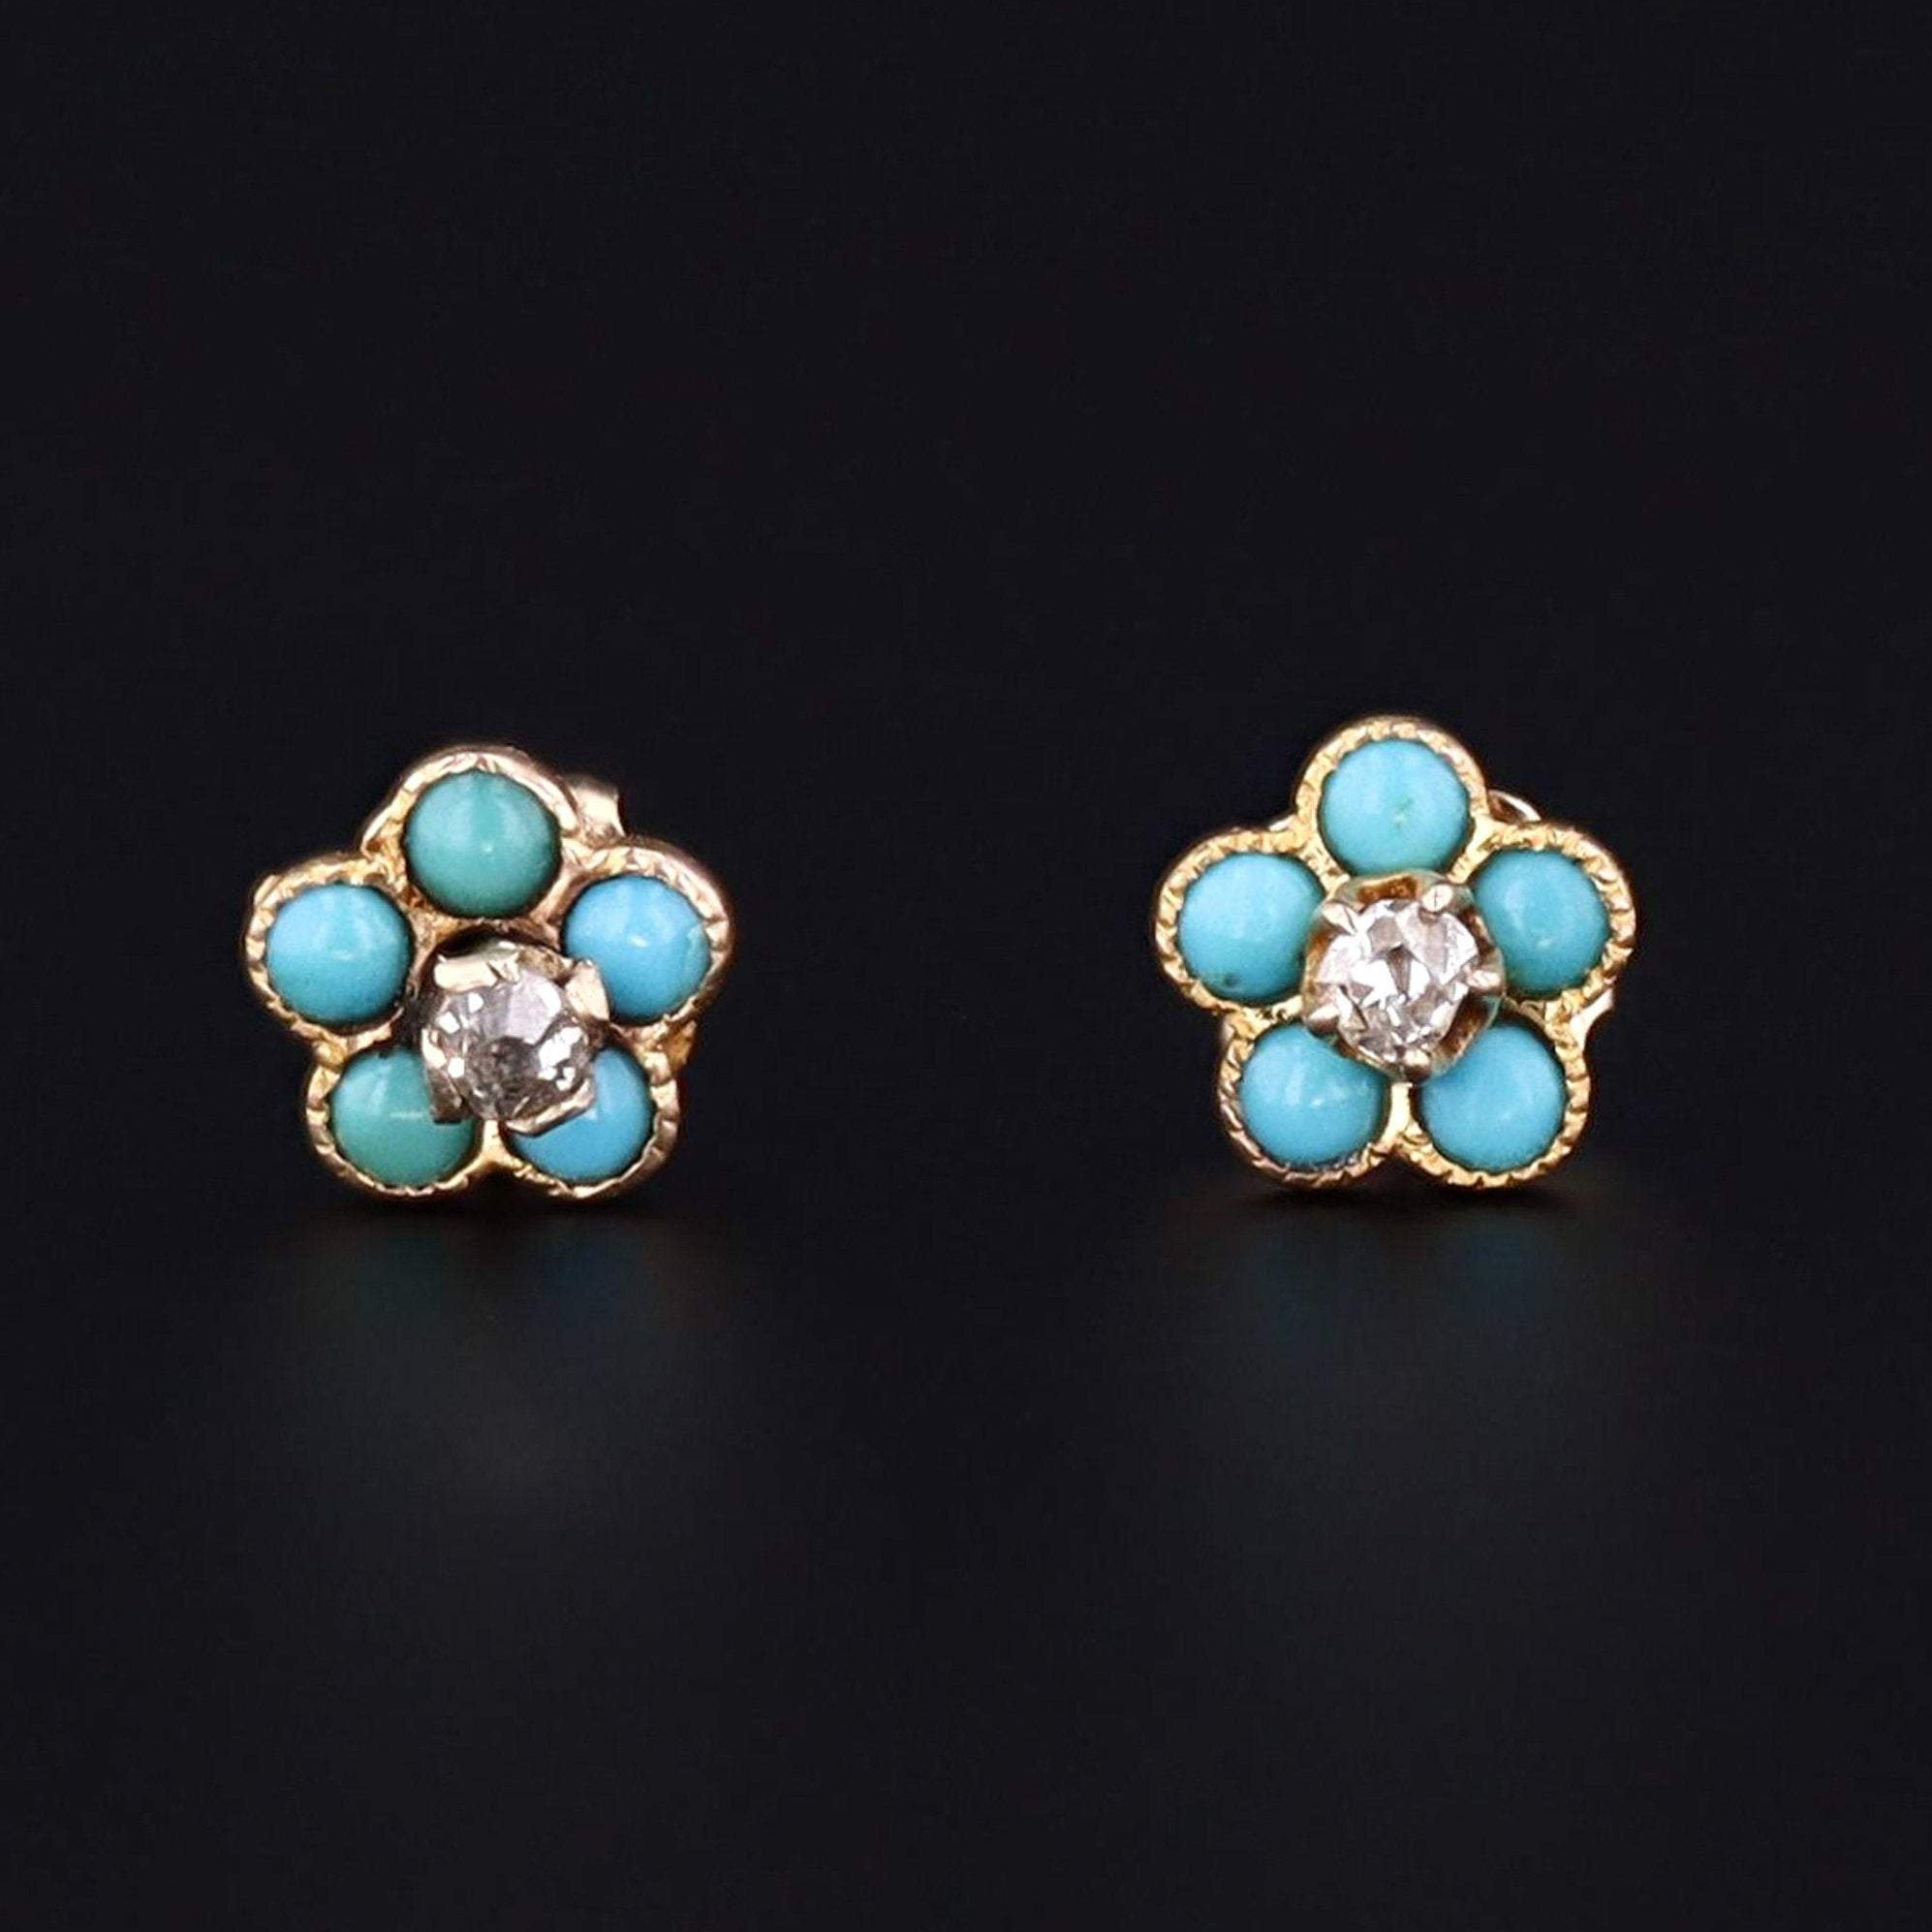 Turquoise & Diamond Flower Earrings | 14k Gold Earrings | Antique Pin Conversion Earrings | Forget-me-not Flower Earrings